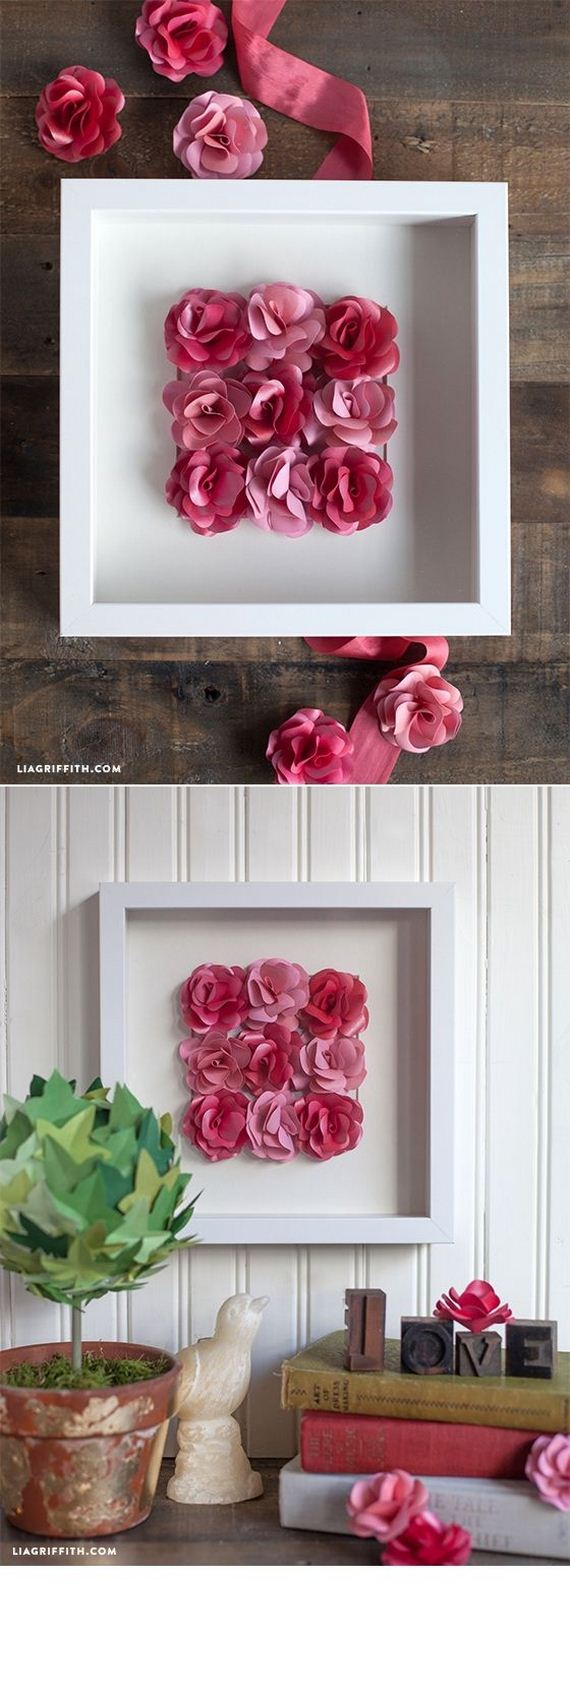 17-Rose-DIY-Projects